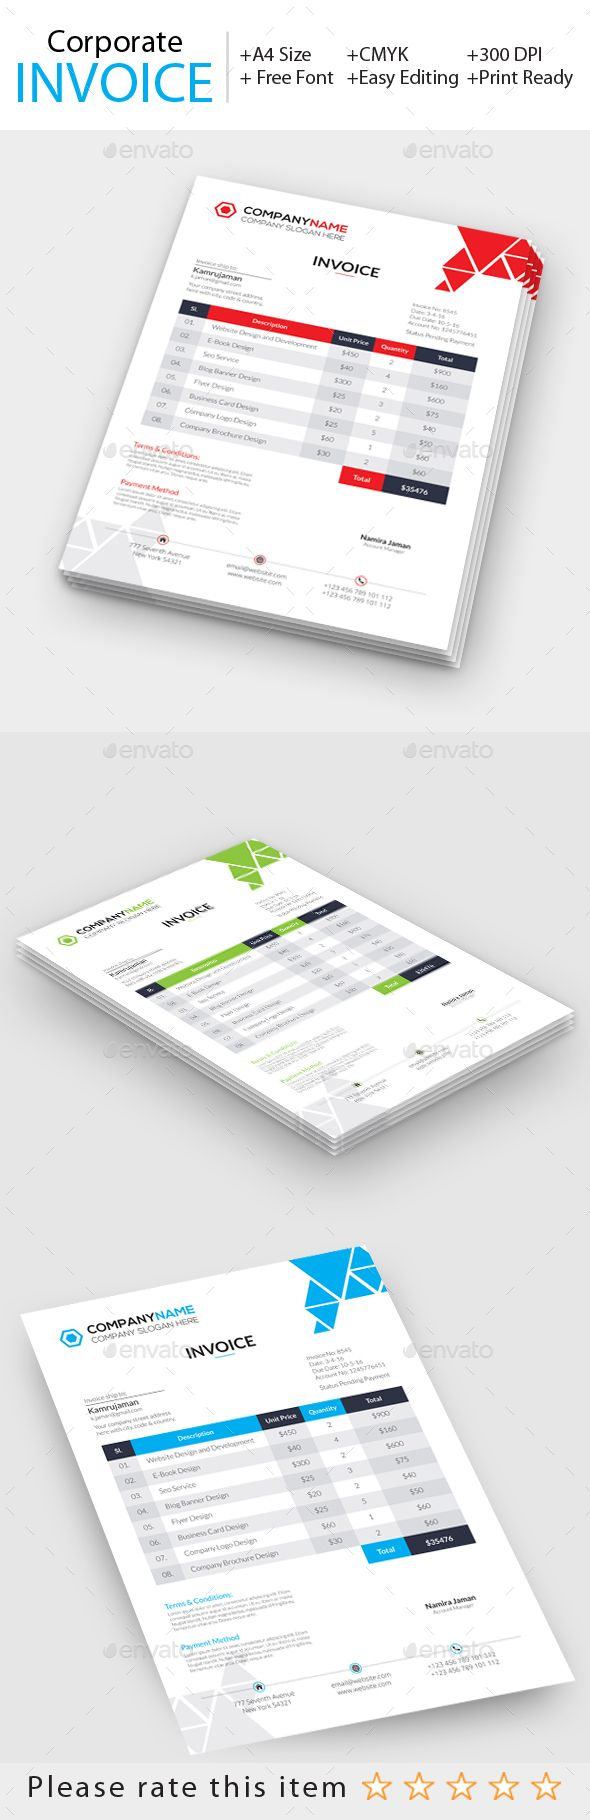 corporate invoice business proposal font logo and fonts